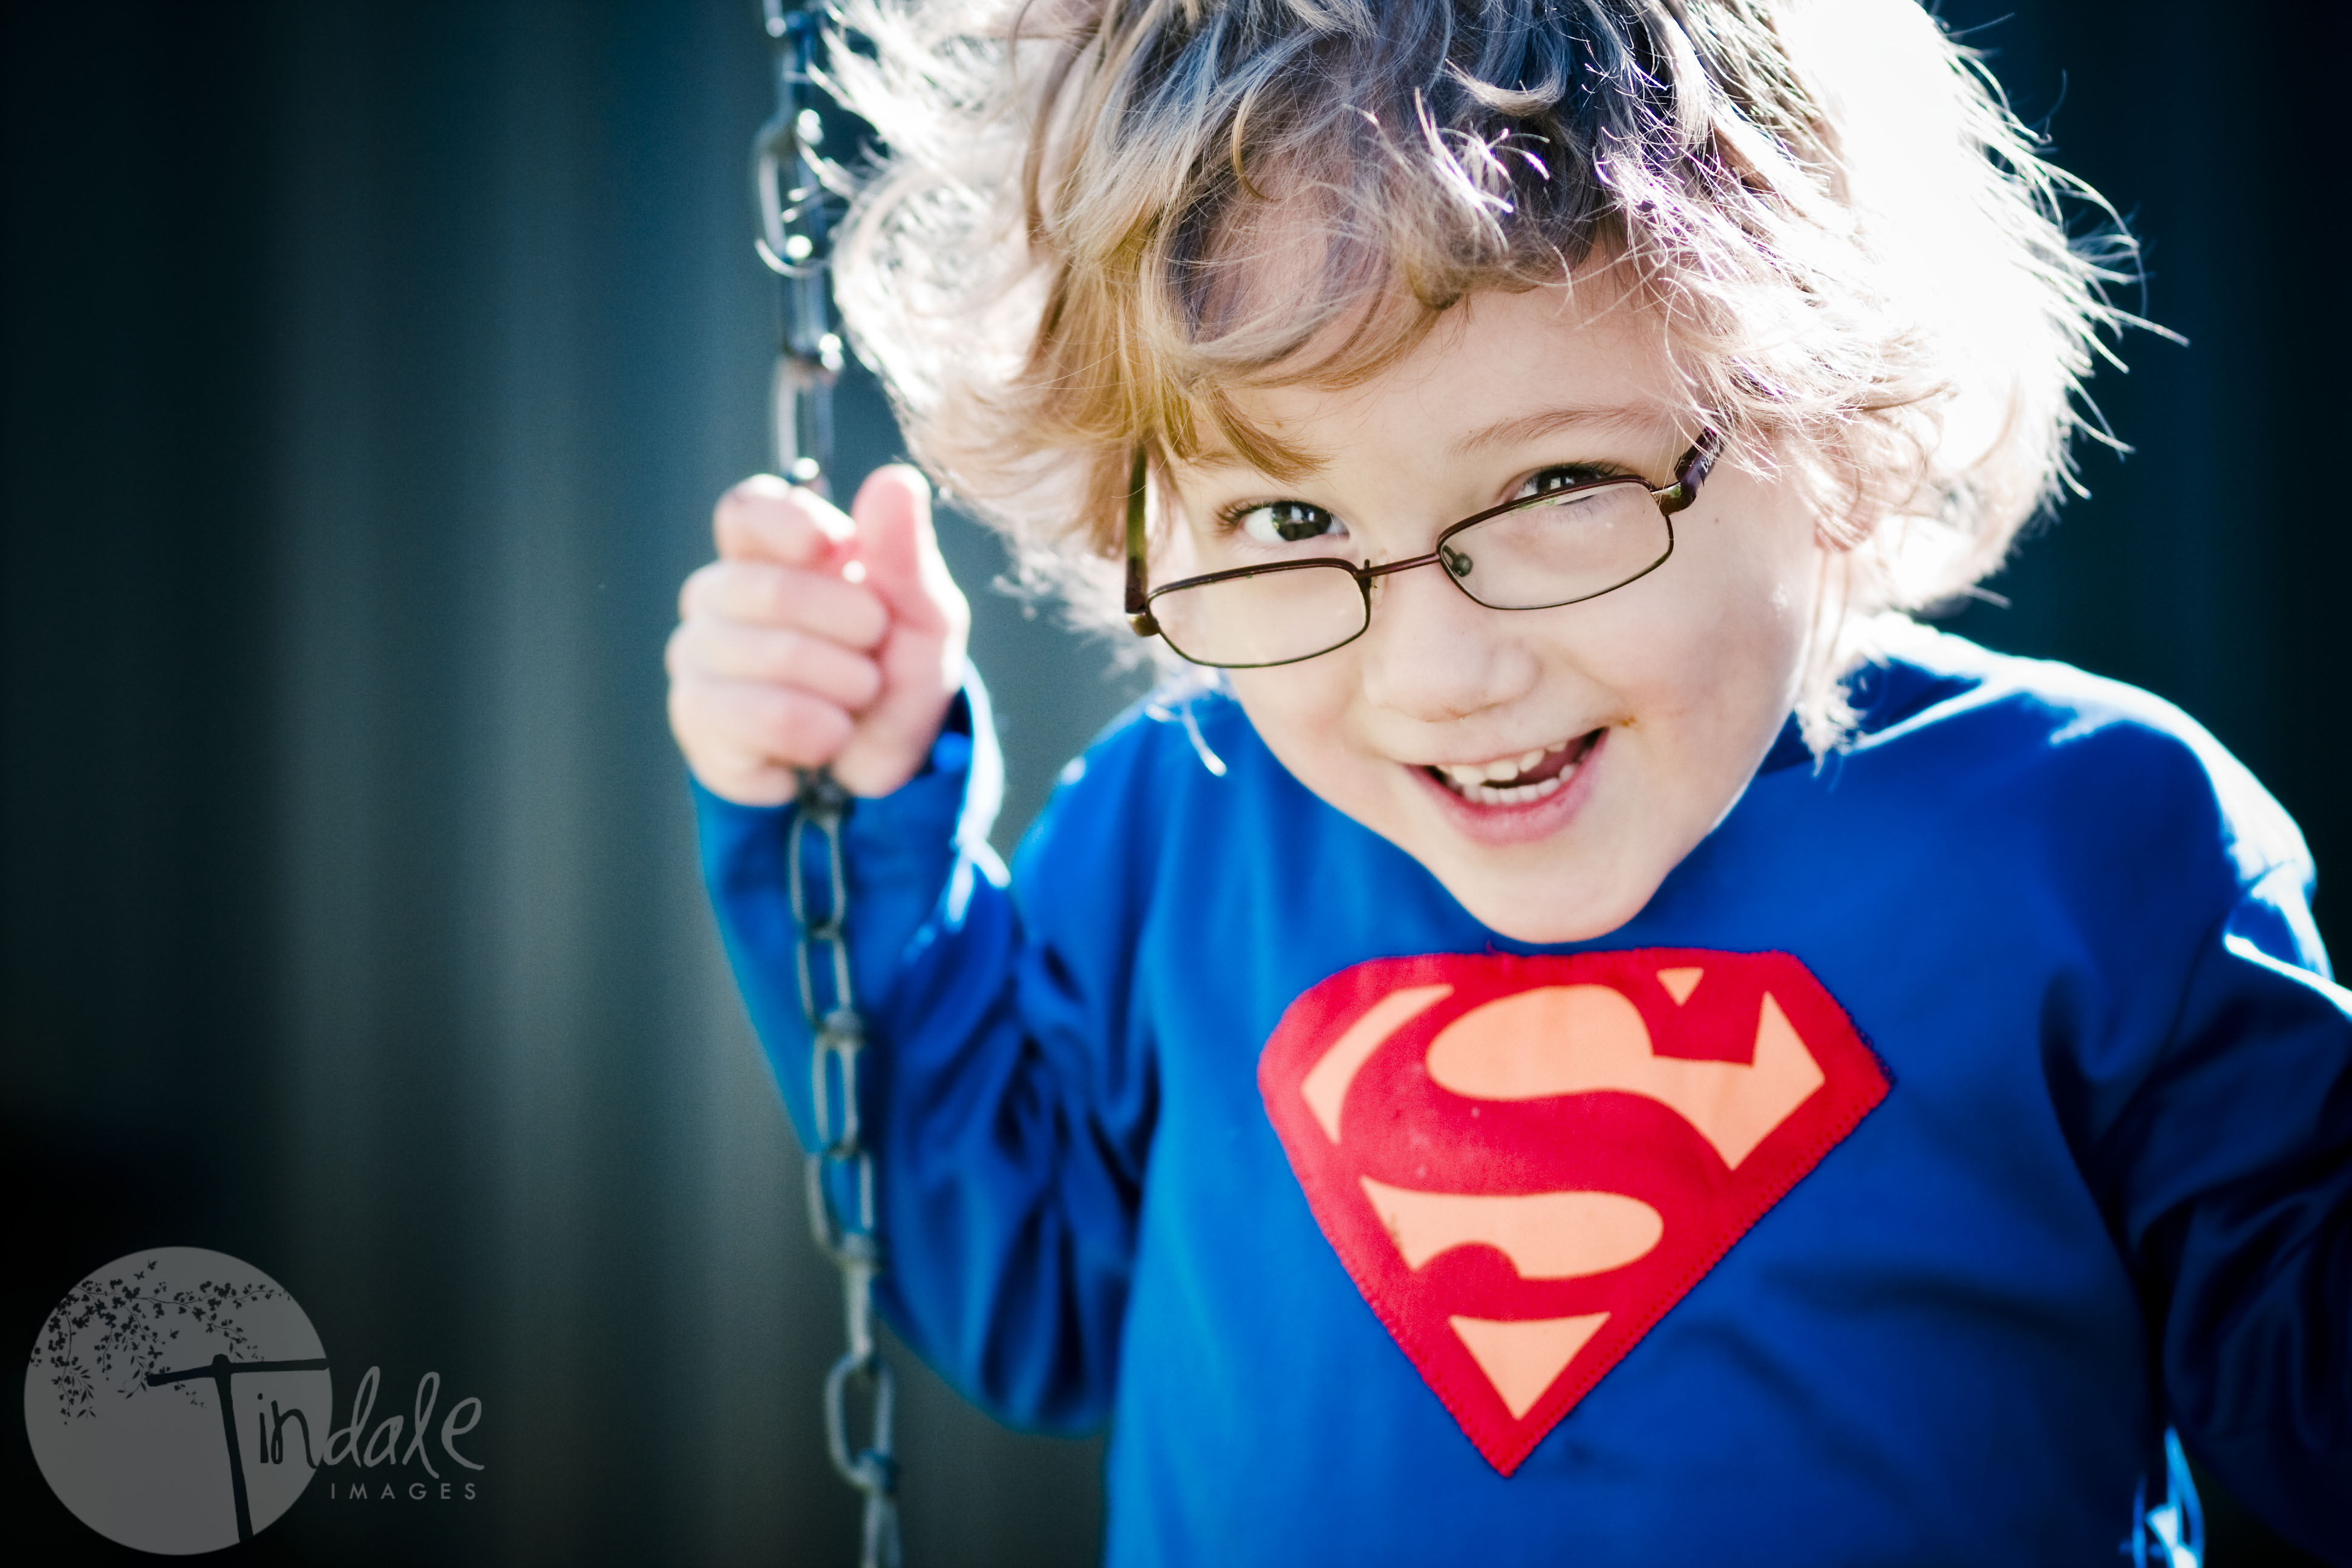 Fasting than a speeding bullet.. it's superboy!!!